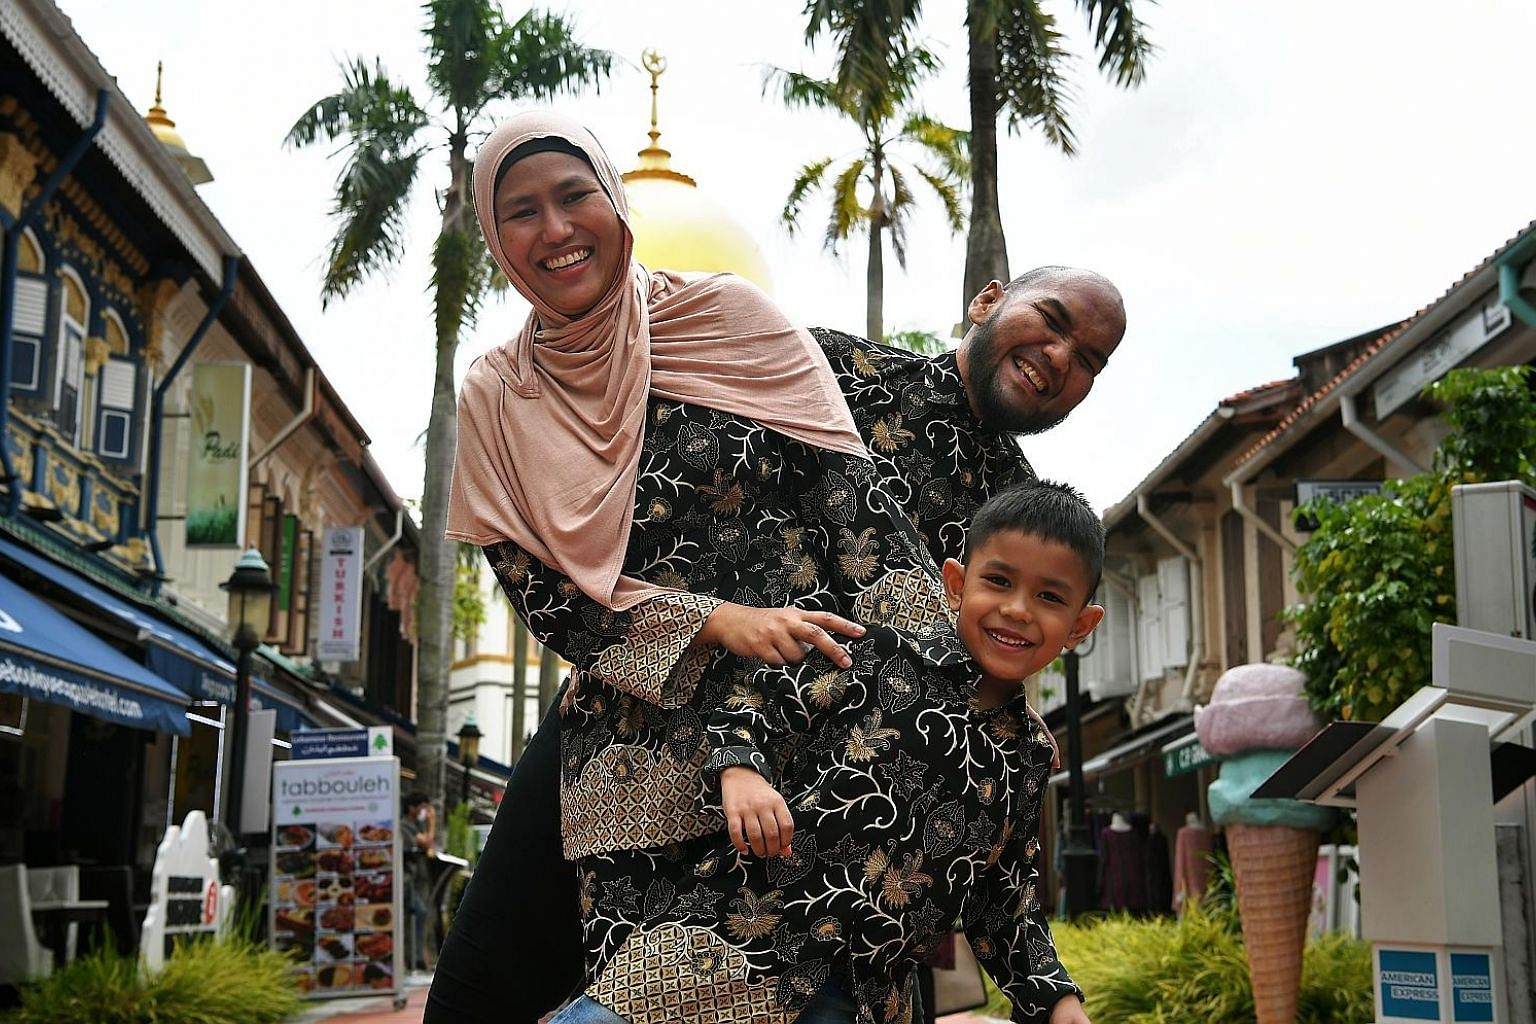 Mr Shahrizal Salleh, also known as Chef Bob, with his wife Kamisah Khamis and son Umar Shahrizal.